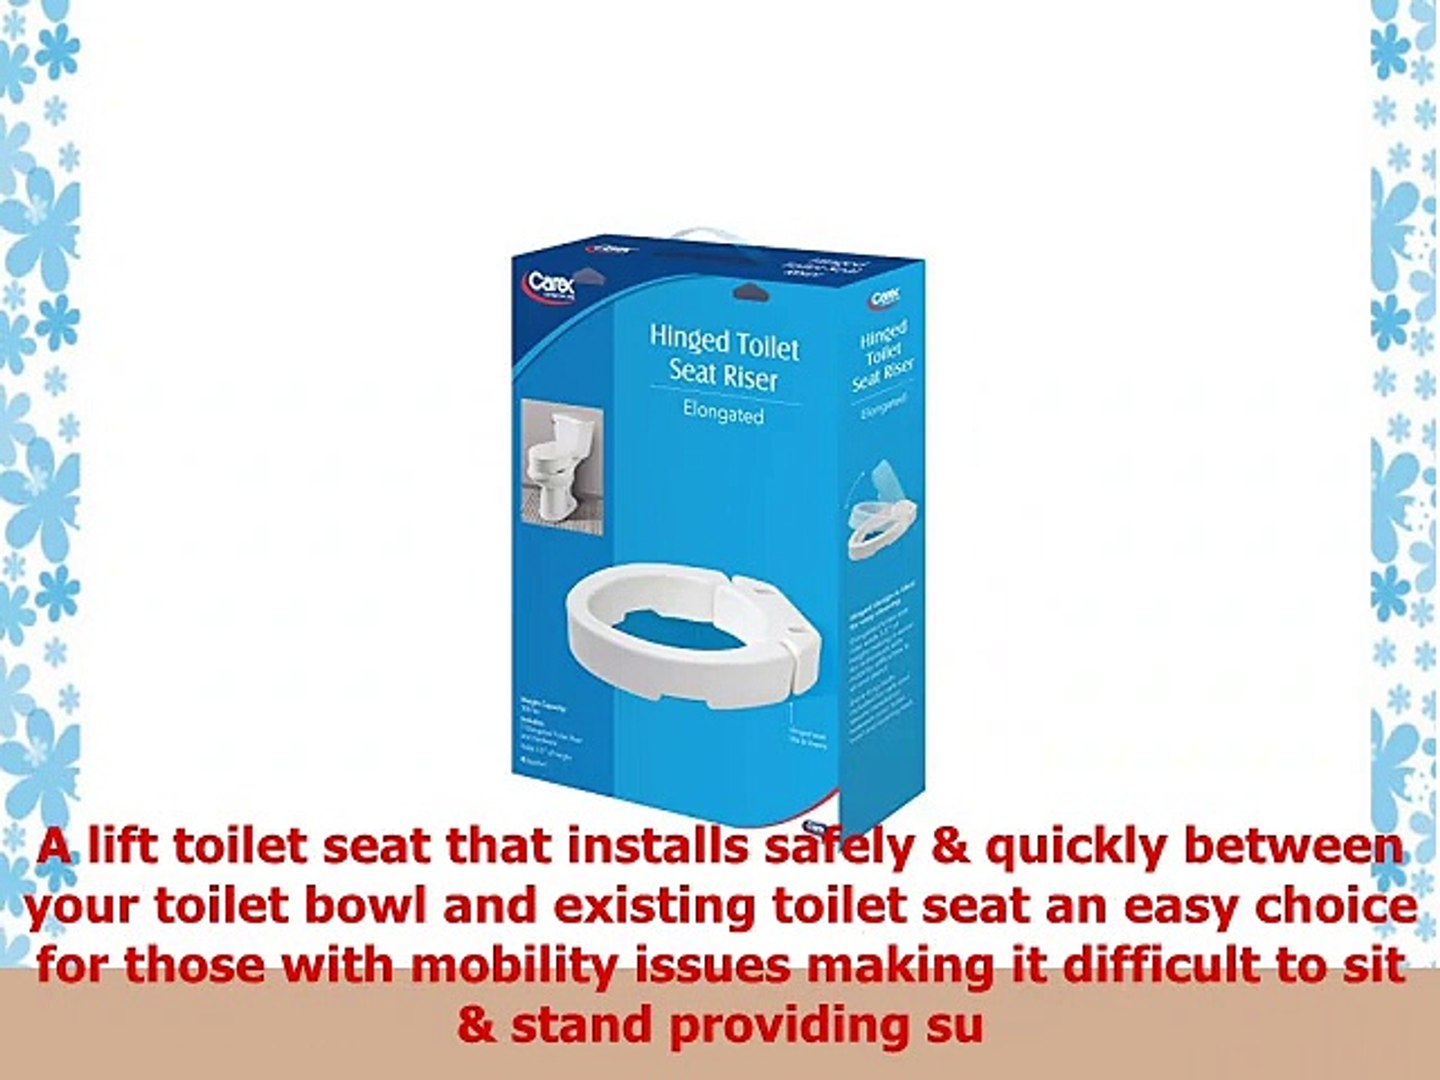 Pleasant Carex Elongated Hinged Toilet Seat Riser Adds 35 Inches Of Toilet Lift 300 Pound Weight Pdpeps Interior Chair Design Pdpepsorg